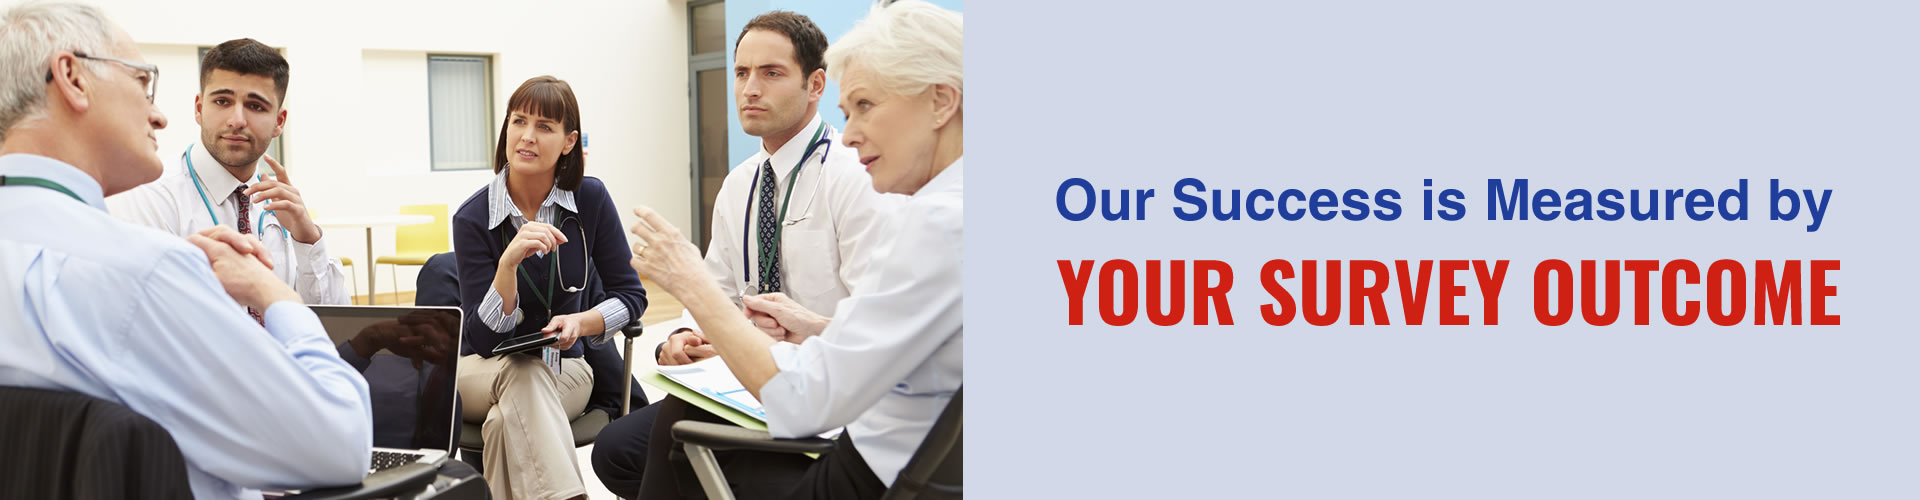 Our Success is Measured by YOUR Survey Outcome